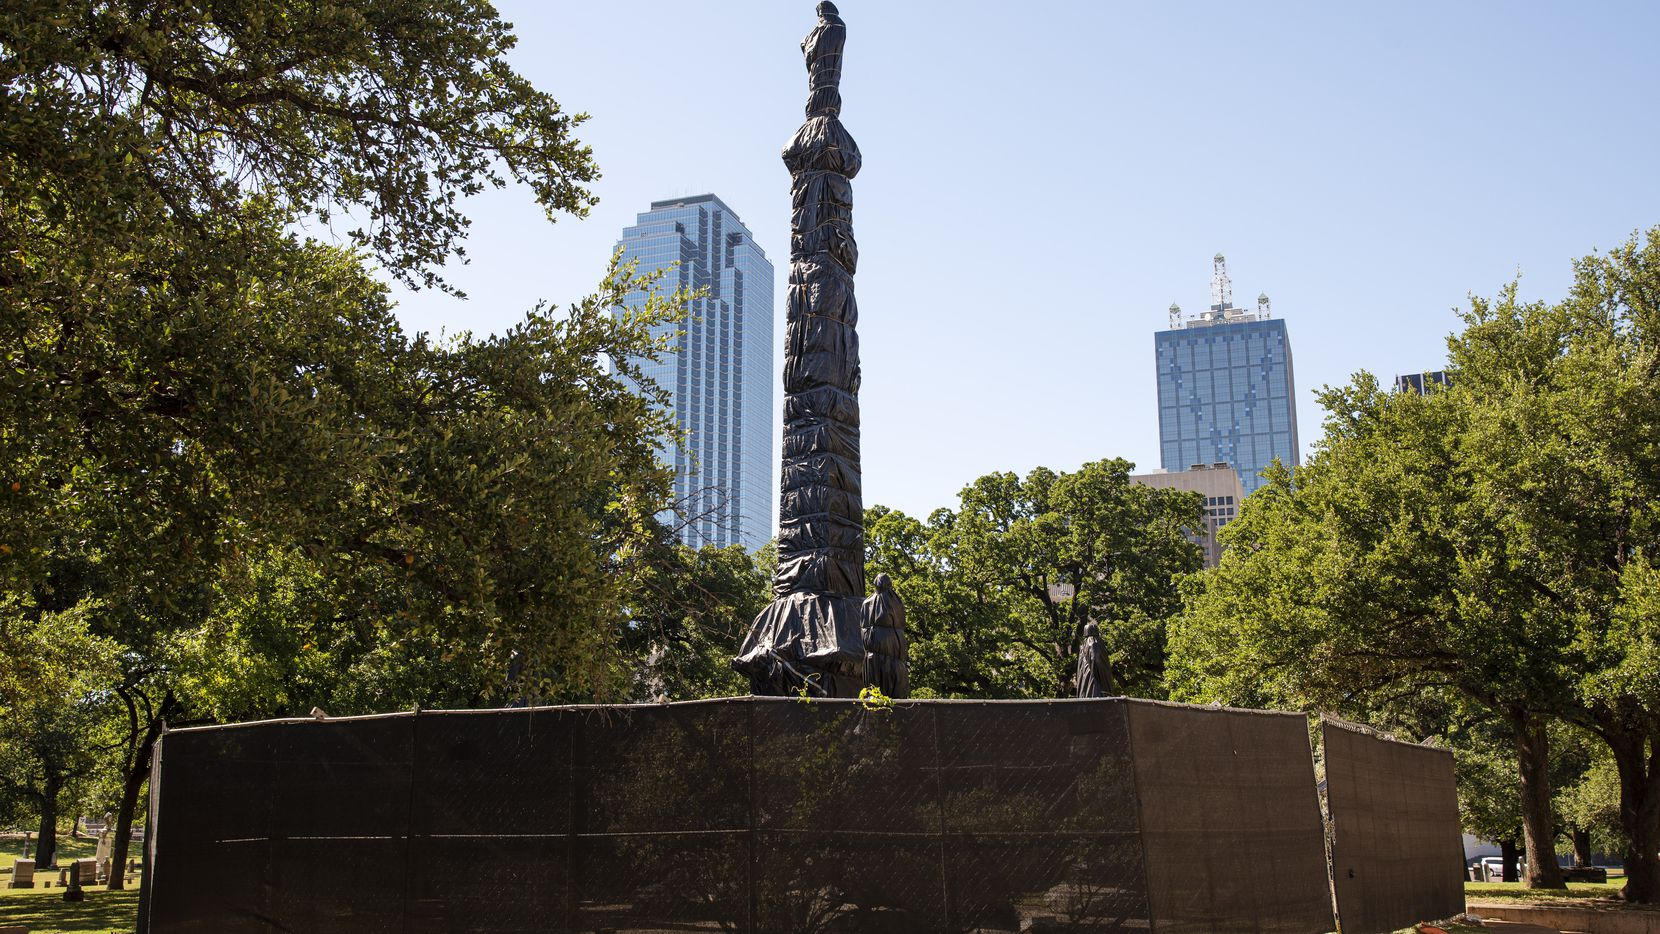 The statues and monument of the Confederate War Memorial are fenced in and wrapped with black plastic, near the Kay Bailey Hutchison convention center and Pioneer Park Cemetery in downtown Dallas, Thursday, June 11, 2020.